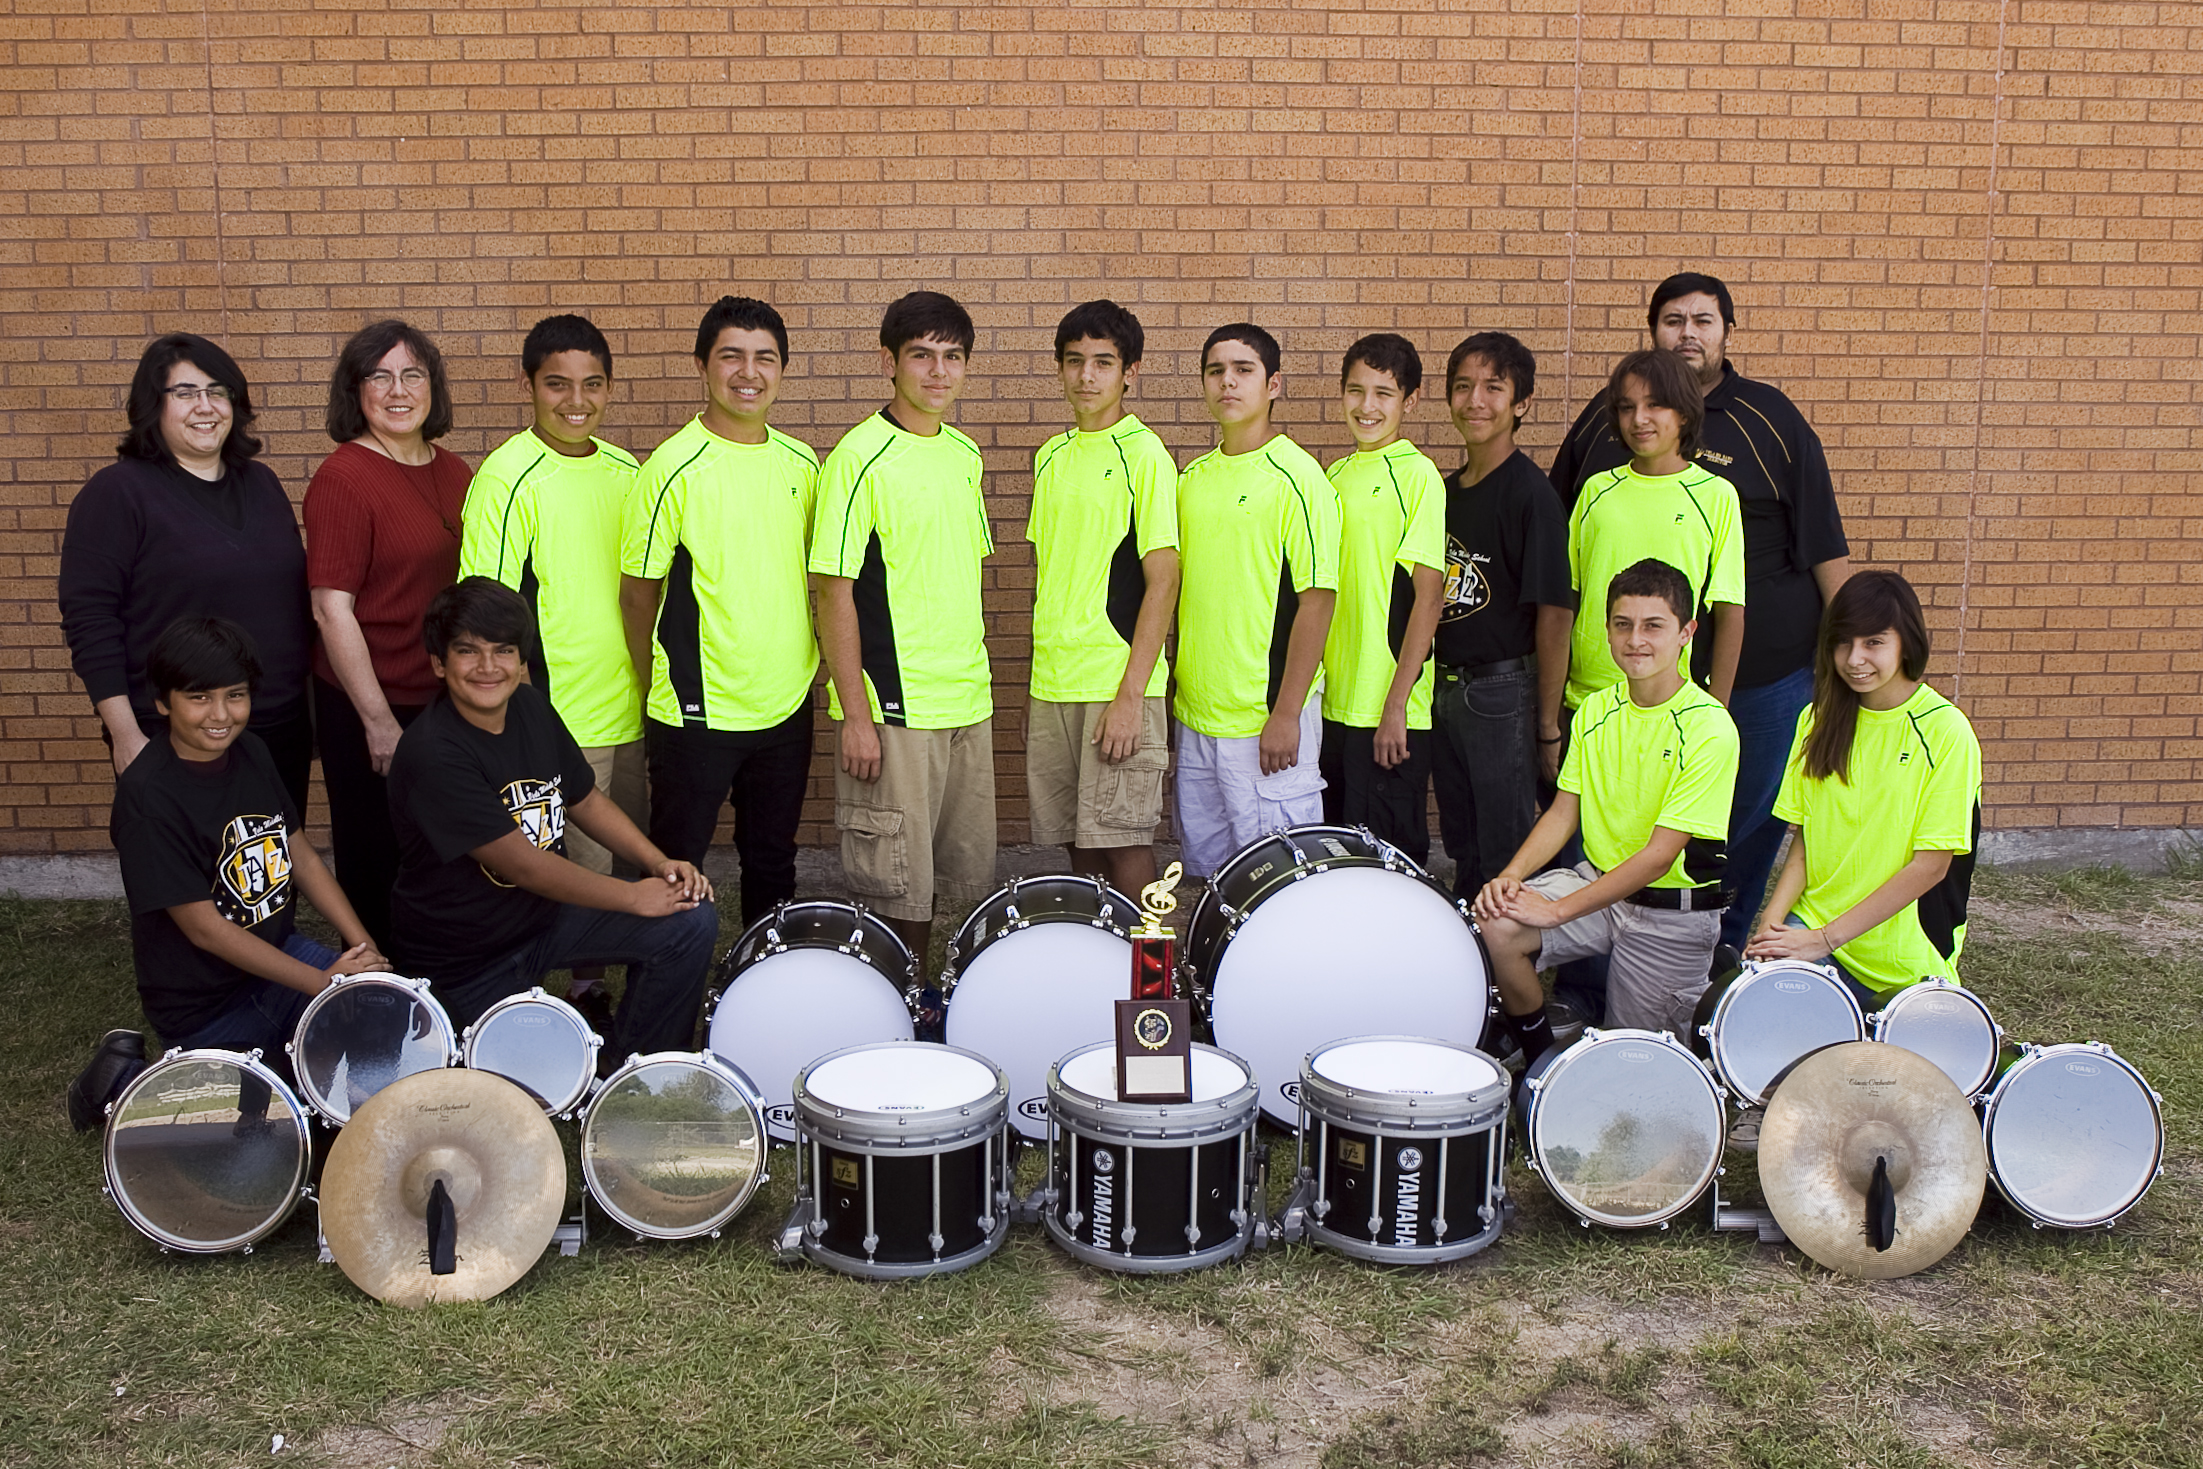 Vela Middle School drumline named Grand Champion at competition